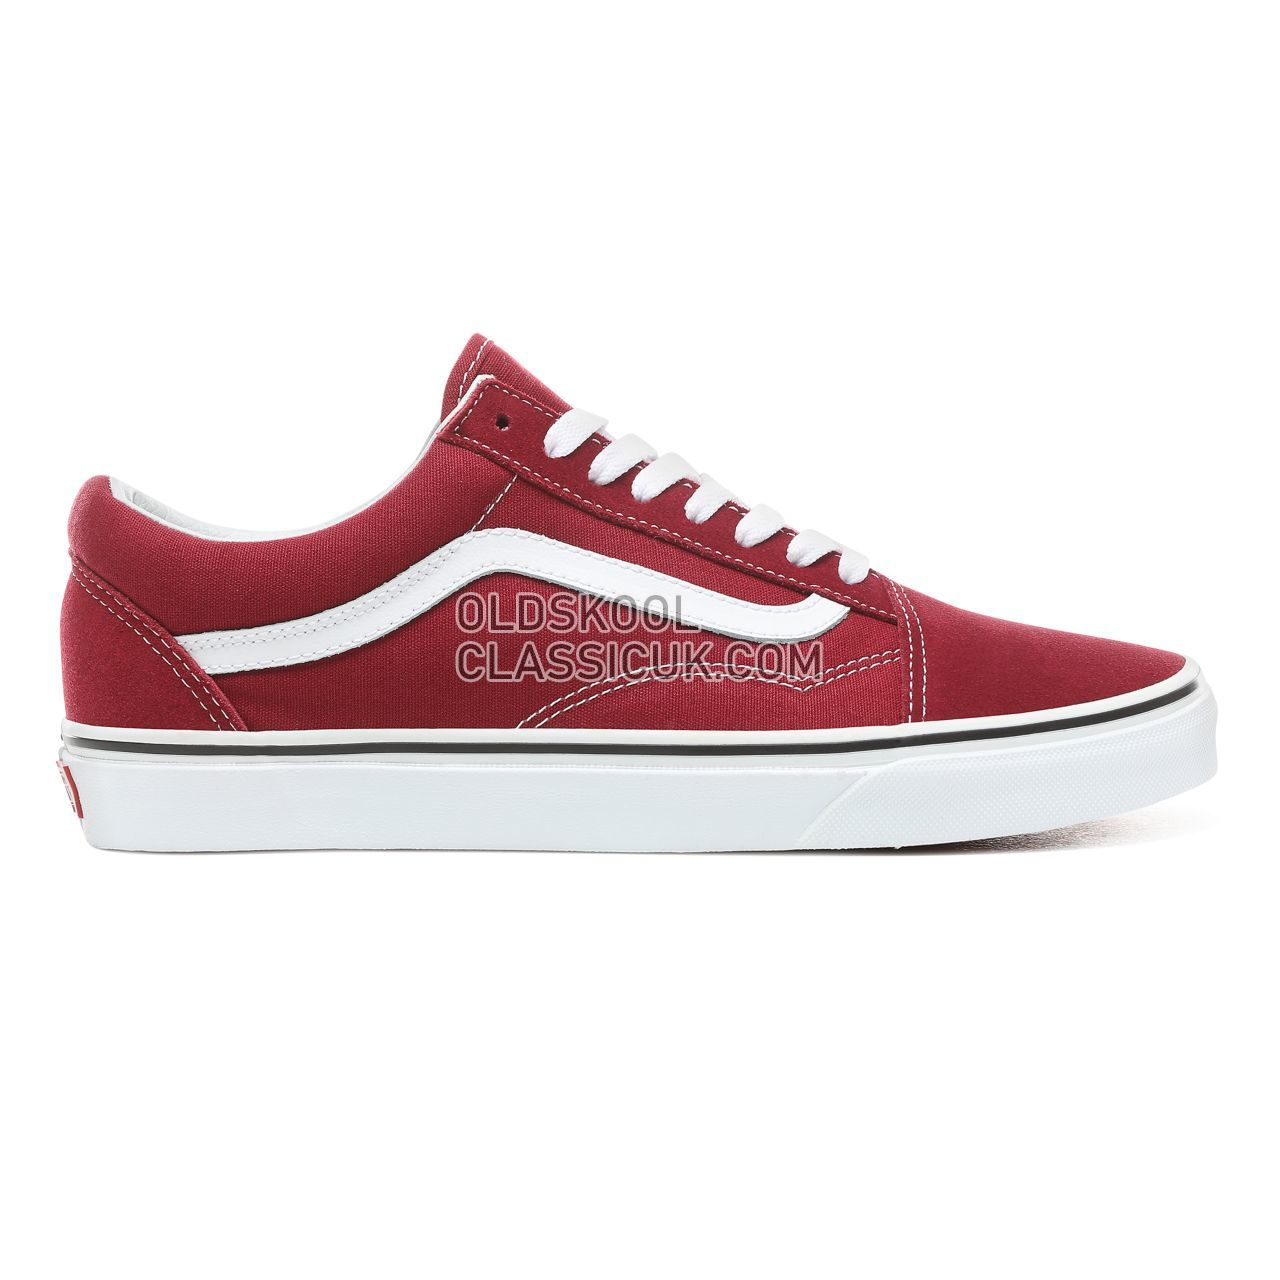 Vans Old Skool Sneakers Mens Womens Unisex Rumba Red/True White VN0A38G1VG4 Shoes